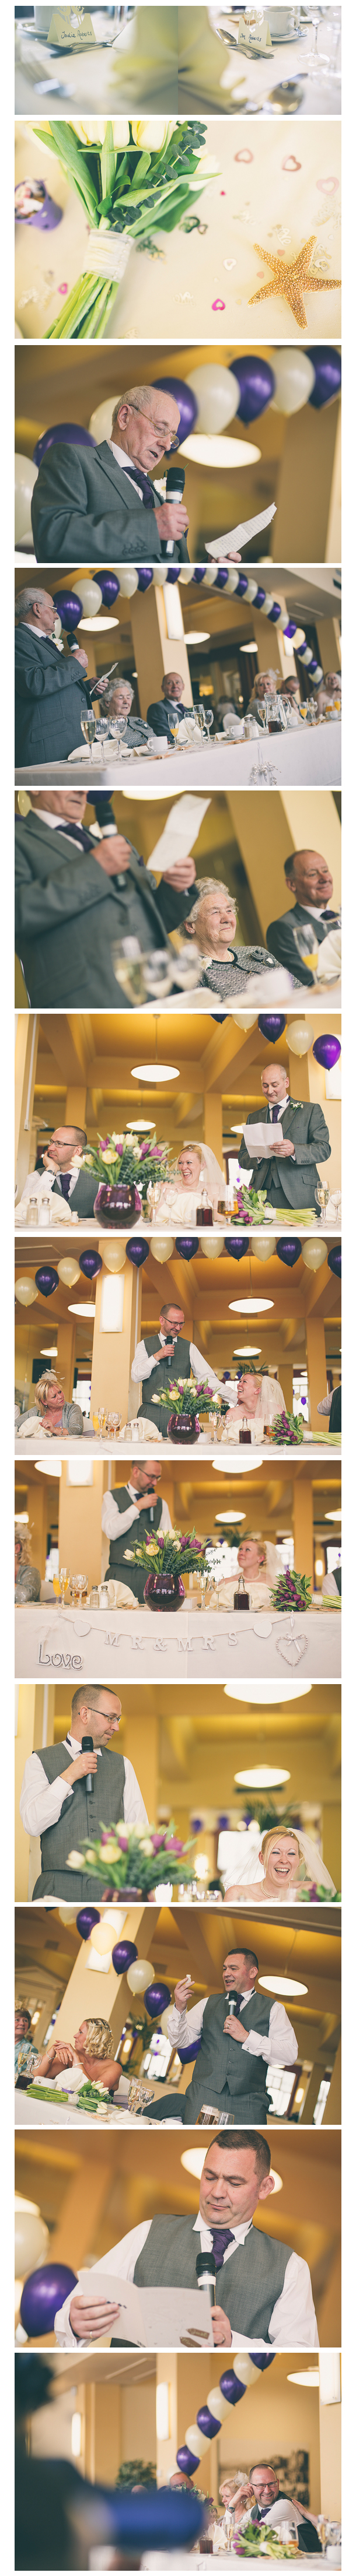 NeilJacksonPhotographicScarboroughYorkYorkshireWeddingPortraitCommercialPhotographerTheSpaScarboroughWeddingBlog8